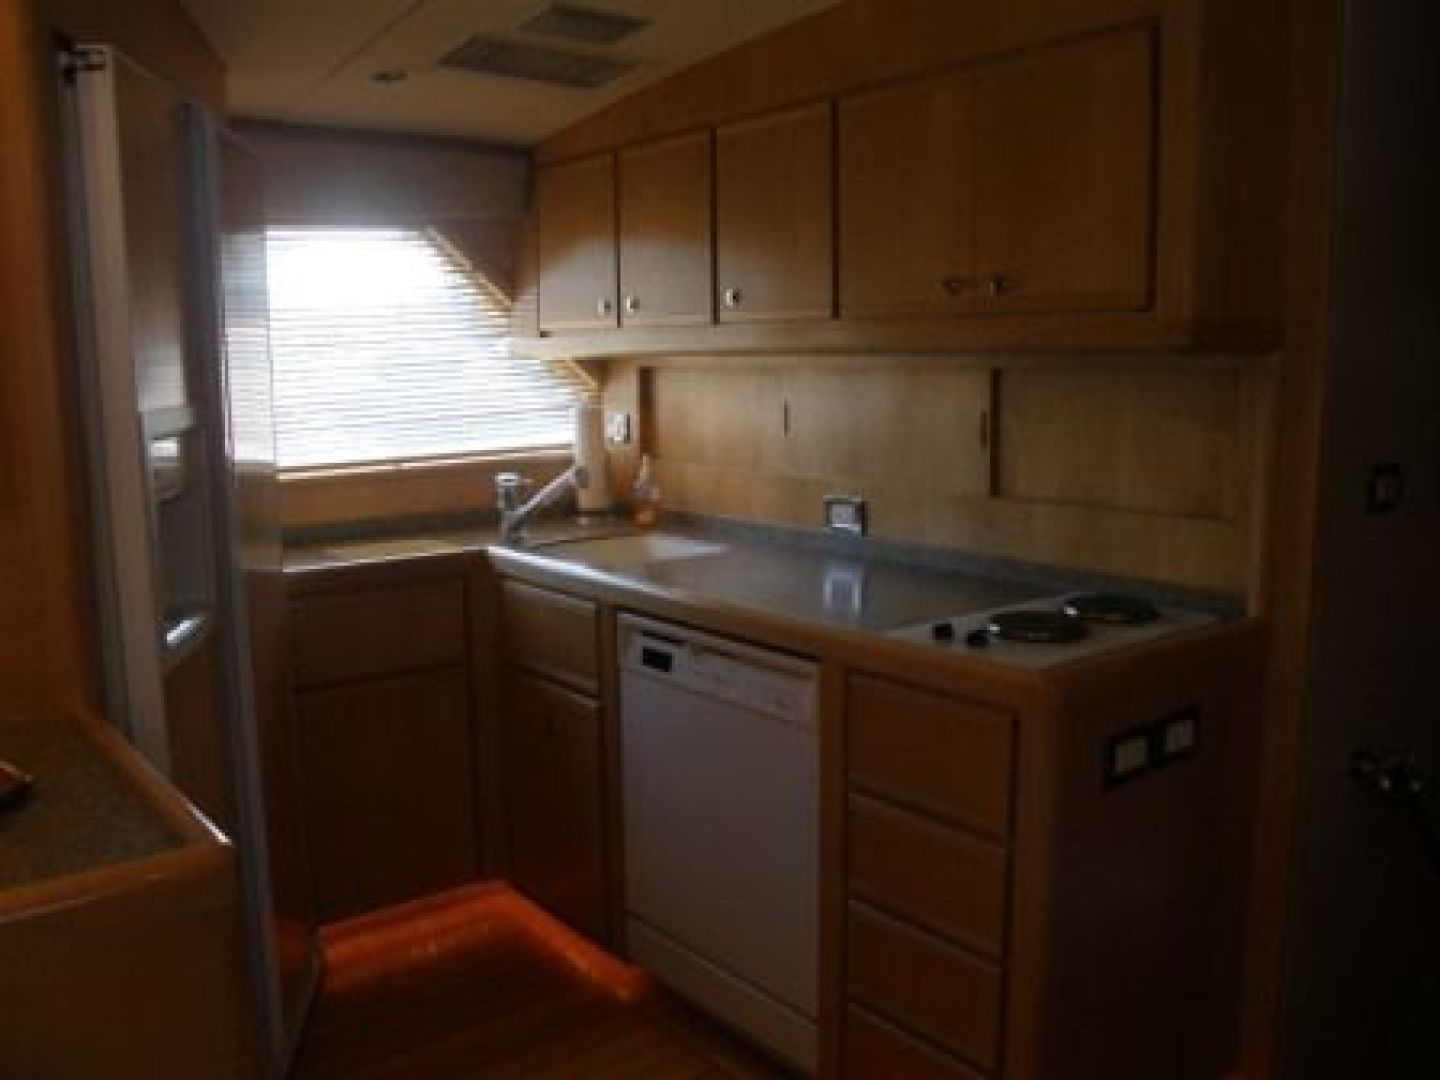 Bertram-Enclosed Flybridge 1997-Off Season Miami-United States-Galley-435859 | Thumbnail